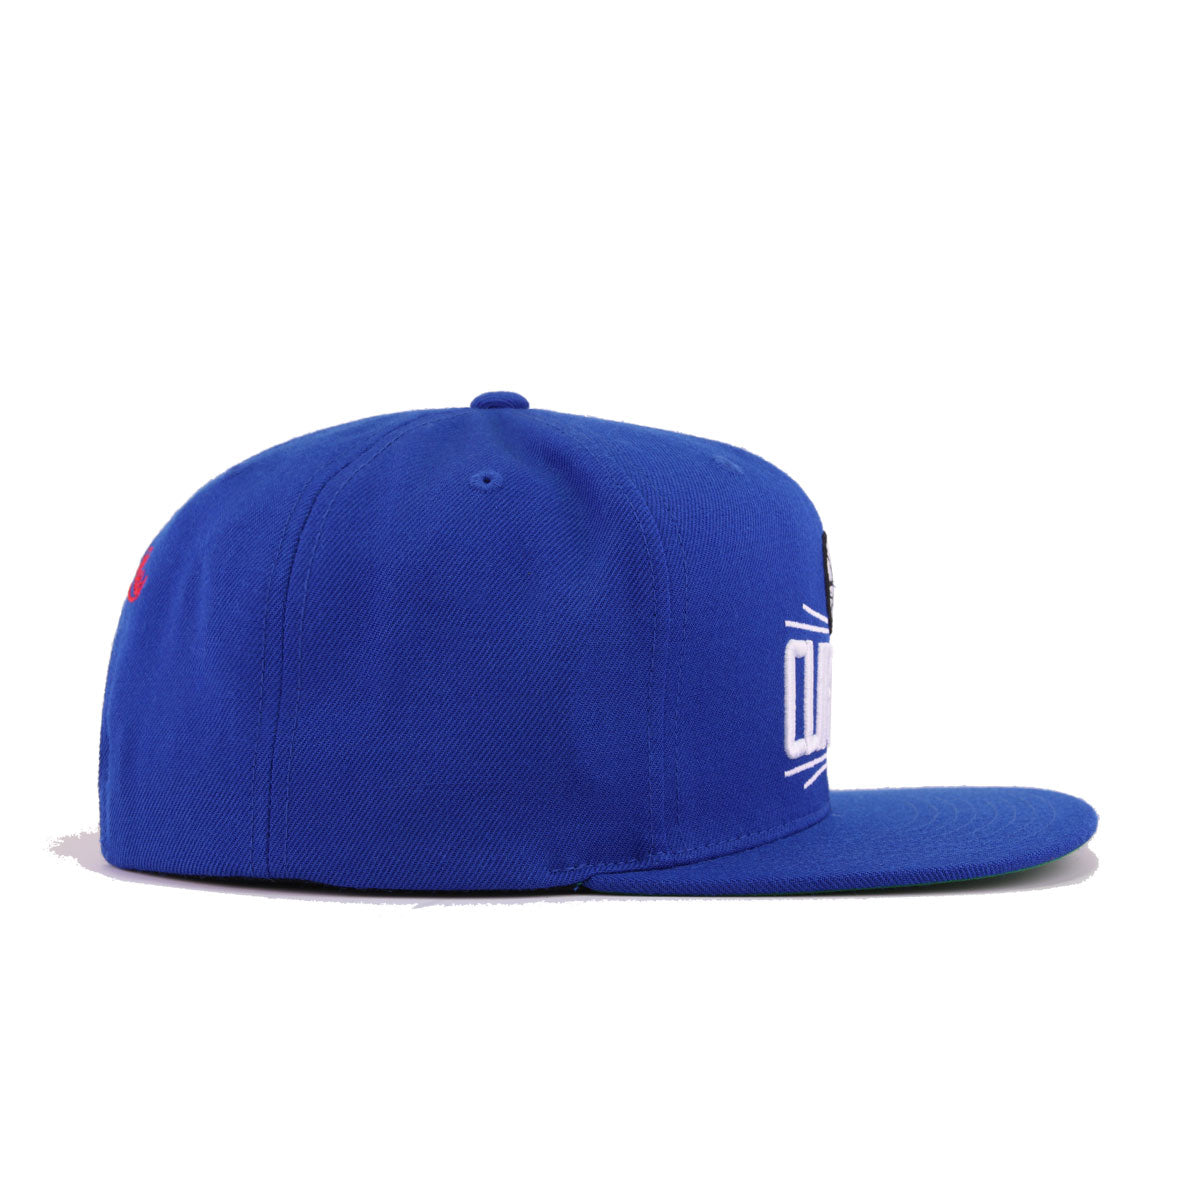 Los Angeles Clippers Light Royal Blue Mitchell and Ness Snapback